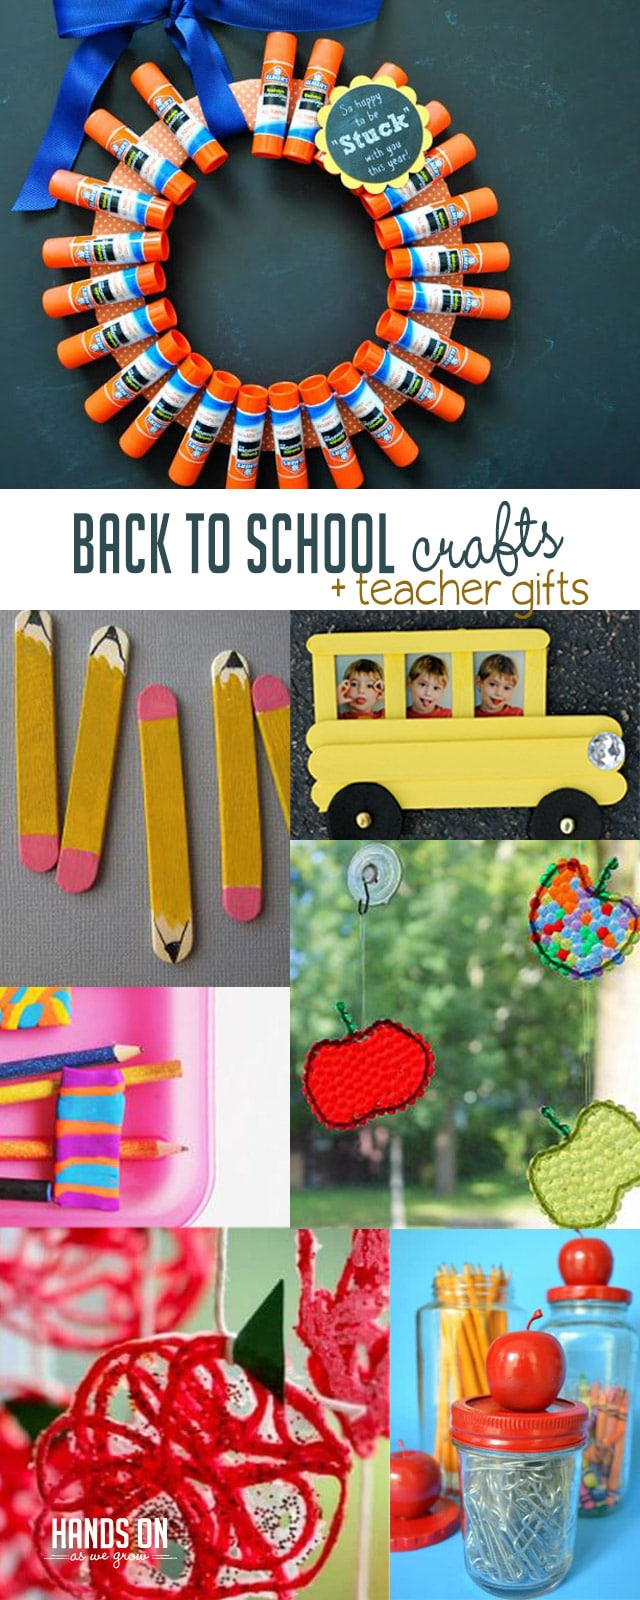 Make the start of school super special with cute back to school crafts that double as teacher gifts!